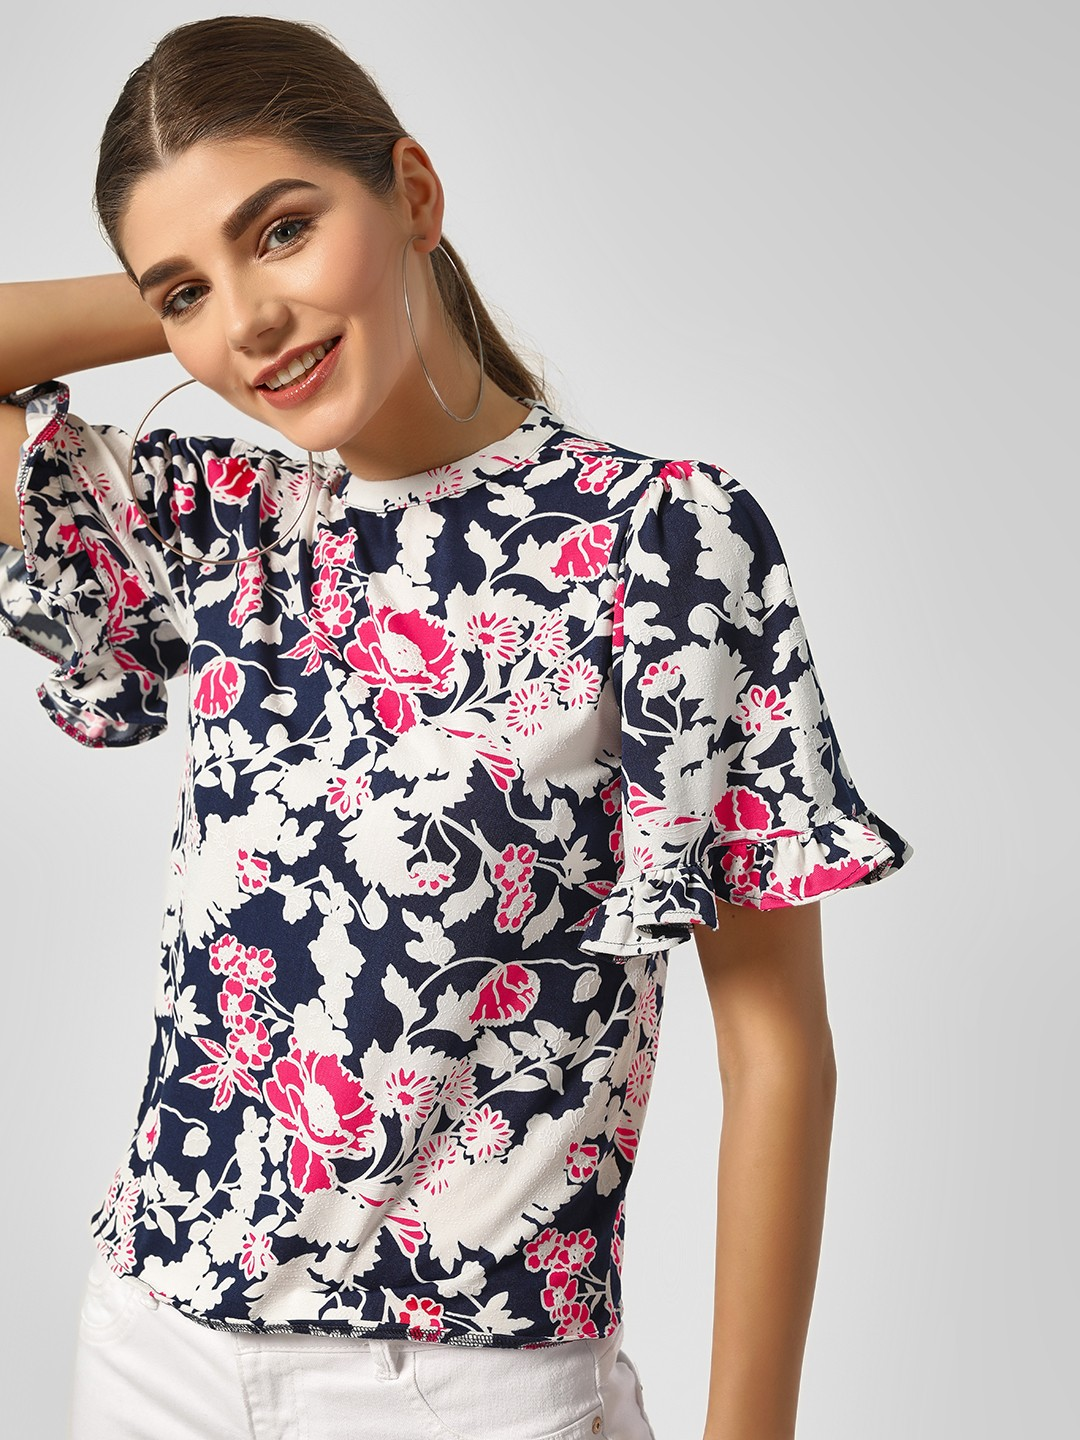 HEY Navy Floral Print Top With Ruffle Sleeve 1